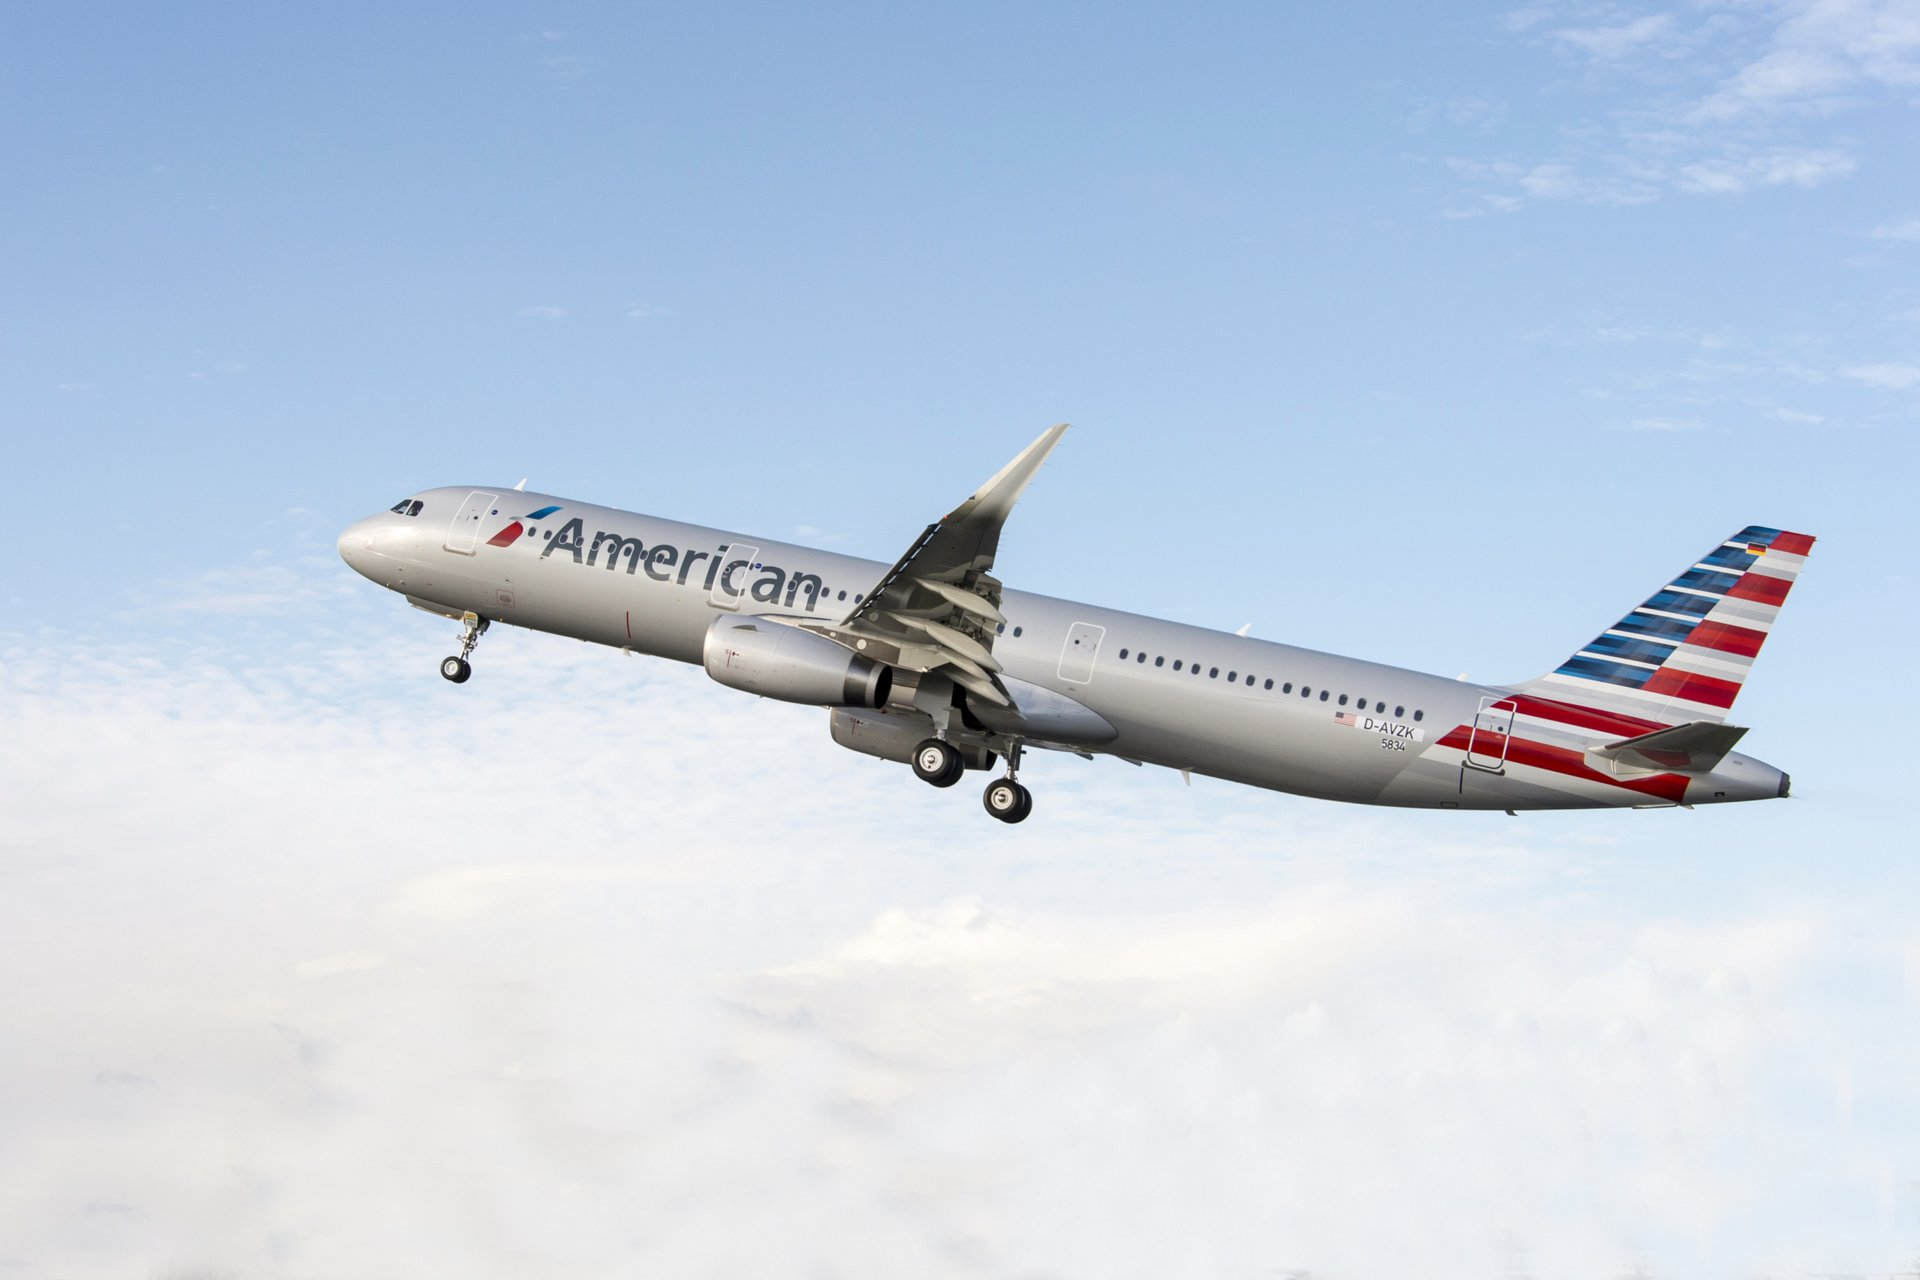 American Airlines (AAL) has chosen Services by Airbus to provide cabin upgrades for 202 of its A321s in-service – the largest retrofit project in Airbus history. The airline will be the first retrofit customer for Airbus' new Airspace XL bins. The larger bins provide a 40 percent increase in storage space for carry-on bags, reducing bin crowding and the need to check bags at the gate, allowing a more relaxed boarding experience to both passengers and cabin crews.